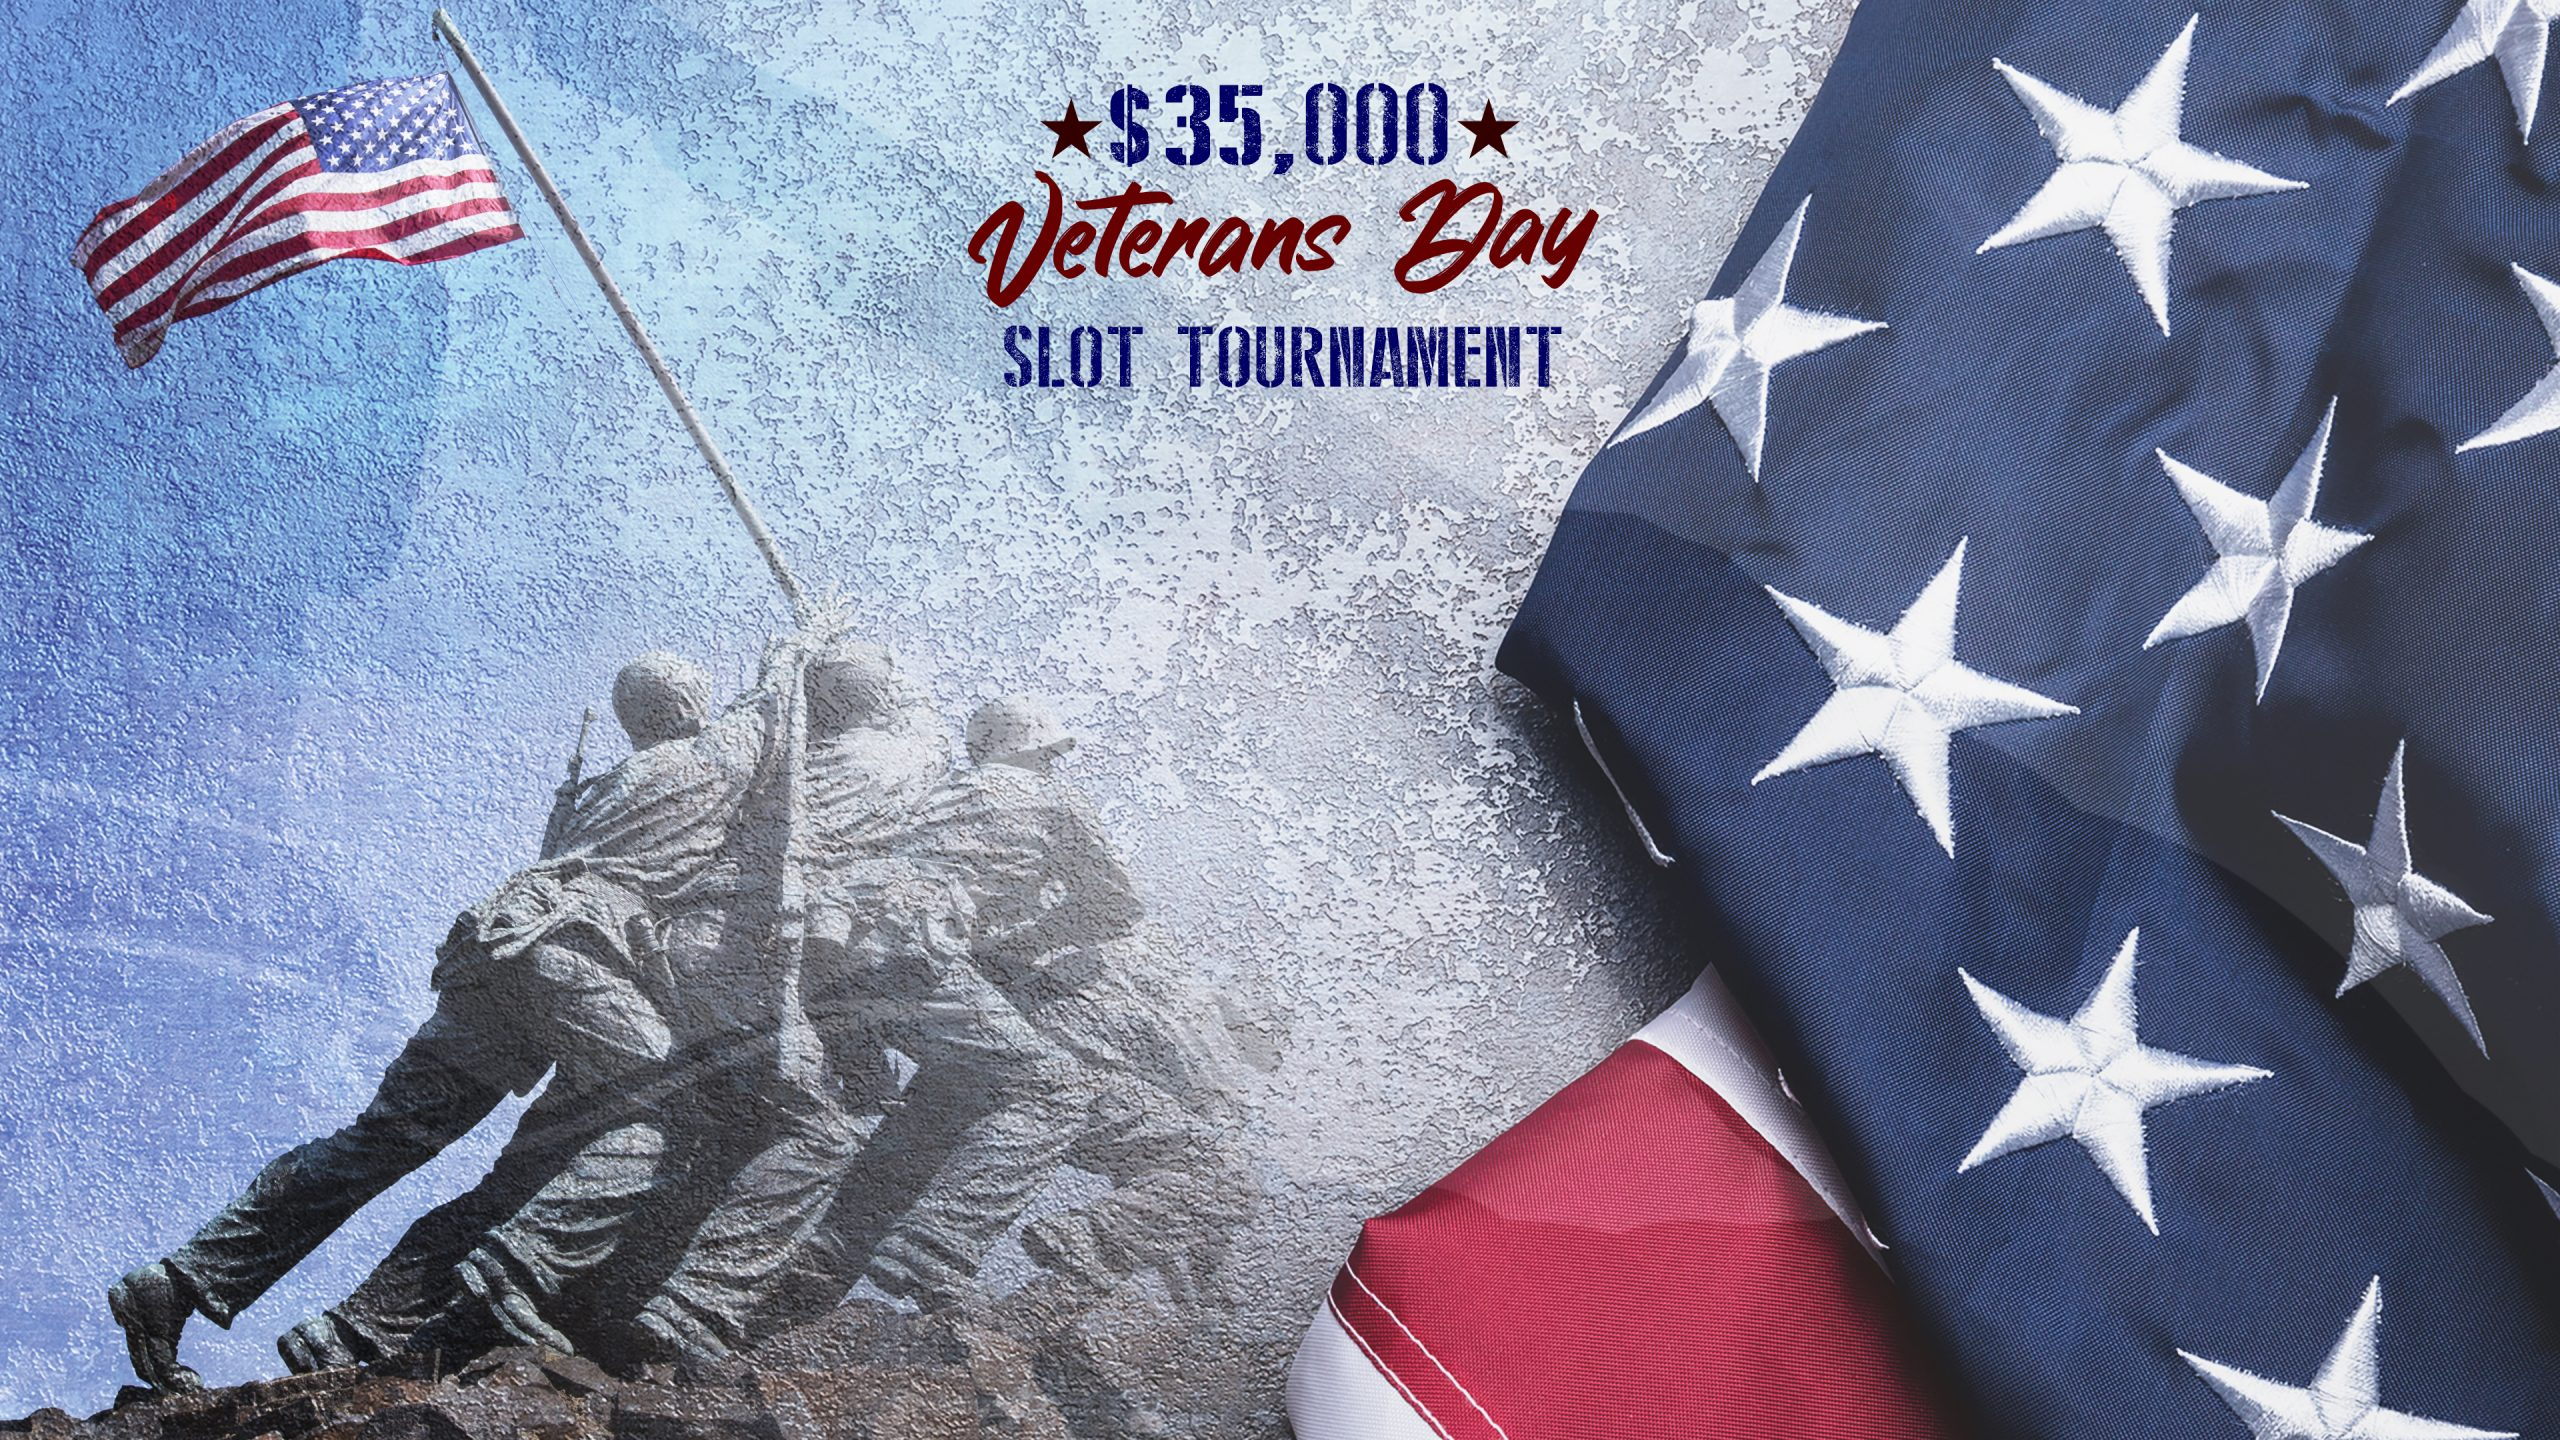 Veteran's Day Slot Tournament